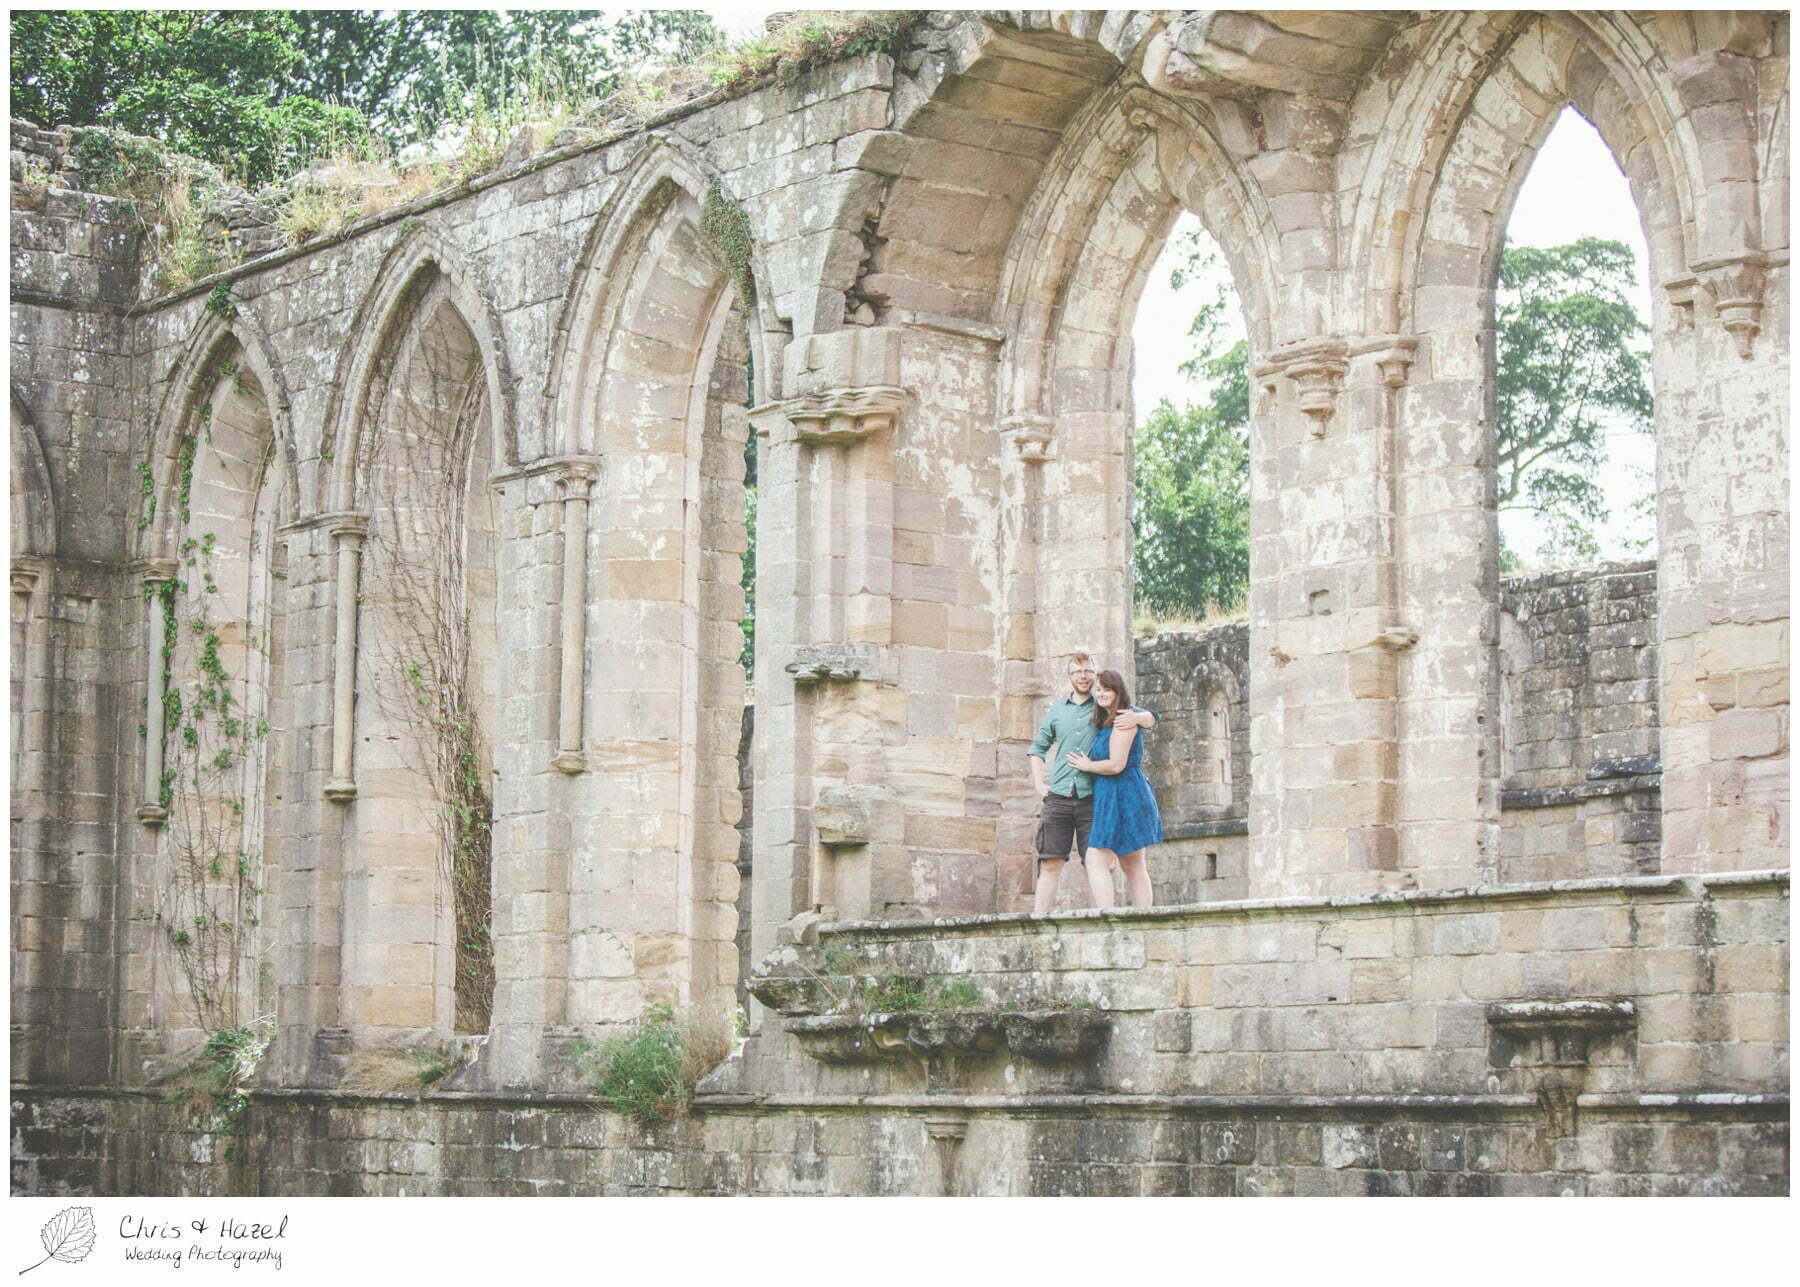 abbey ruins, engagement, dogs, Fountains abbey national trust, Rippon, Fountains Abbey, Pre Wedding Photography Yorkshire, Chris and Hazel Wedding Photography, Sam Nicholson, Emily Nunwick,